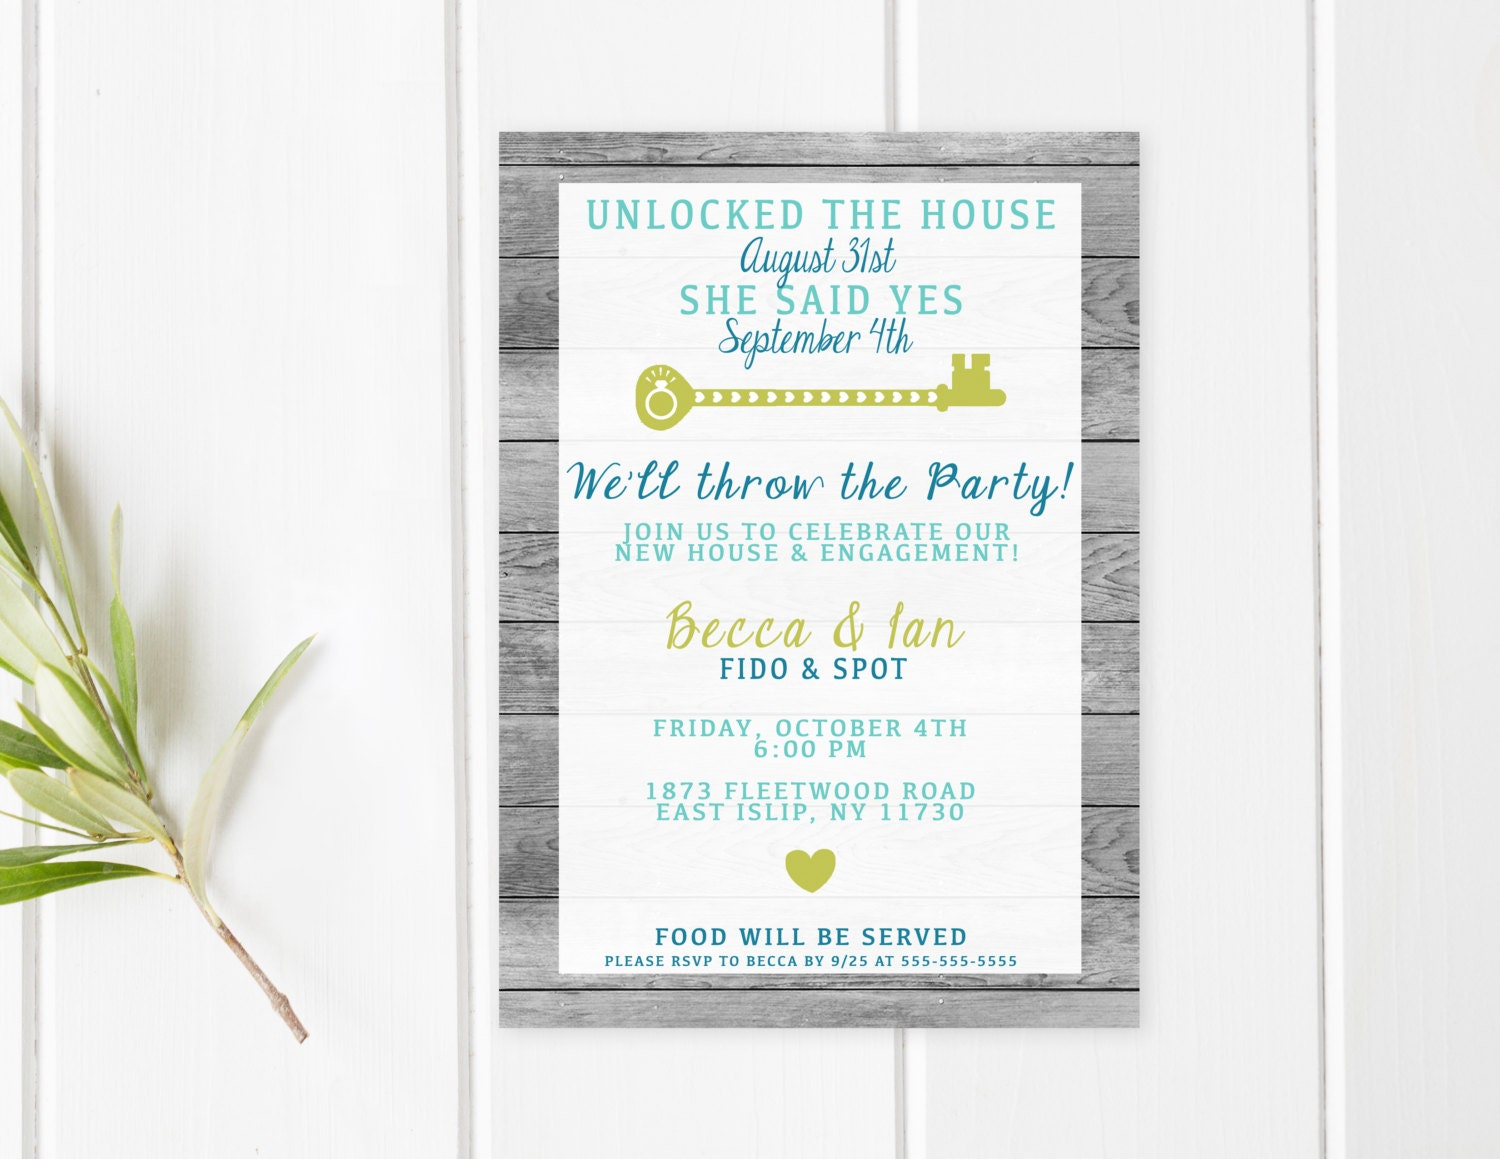 engagement party invitation housewarming party invitation. Black Bedroom Furniture Sets. Home Design Ideas